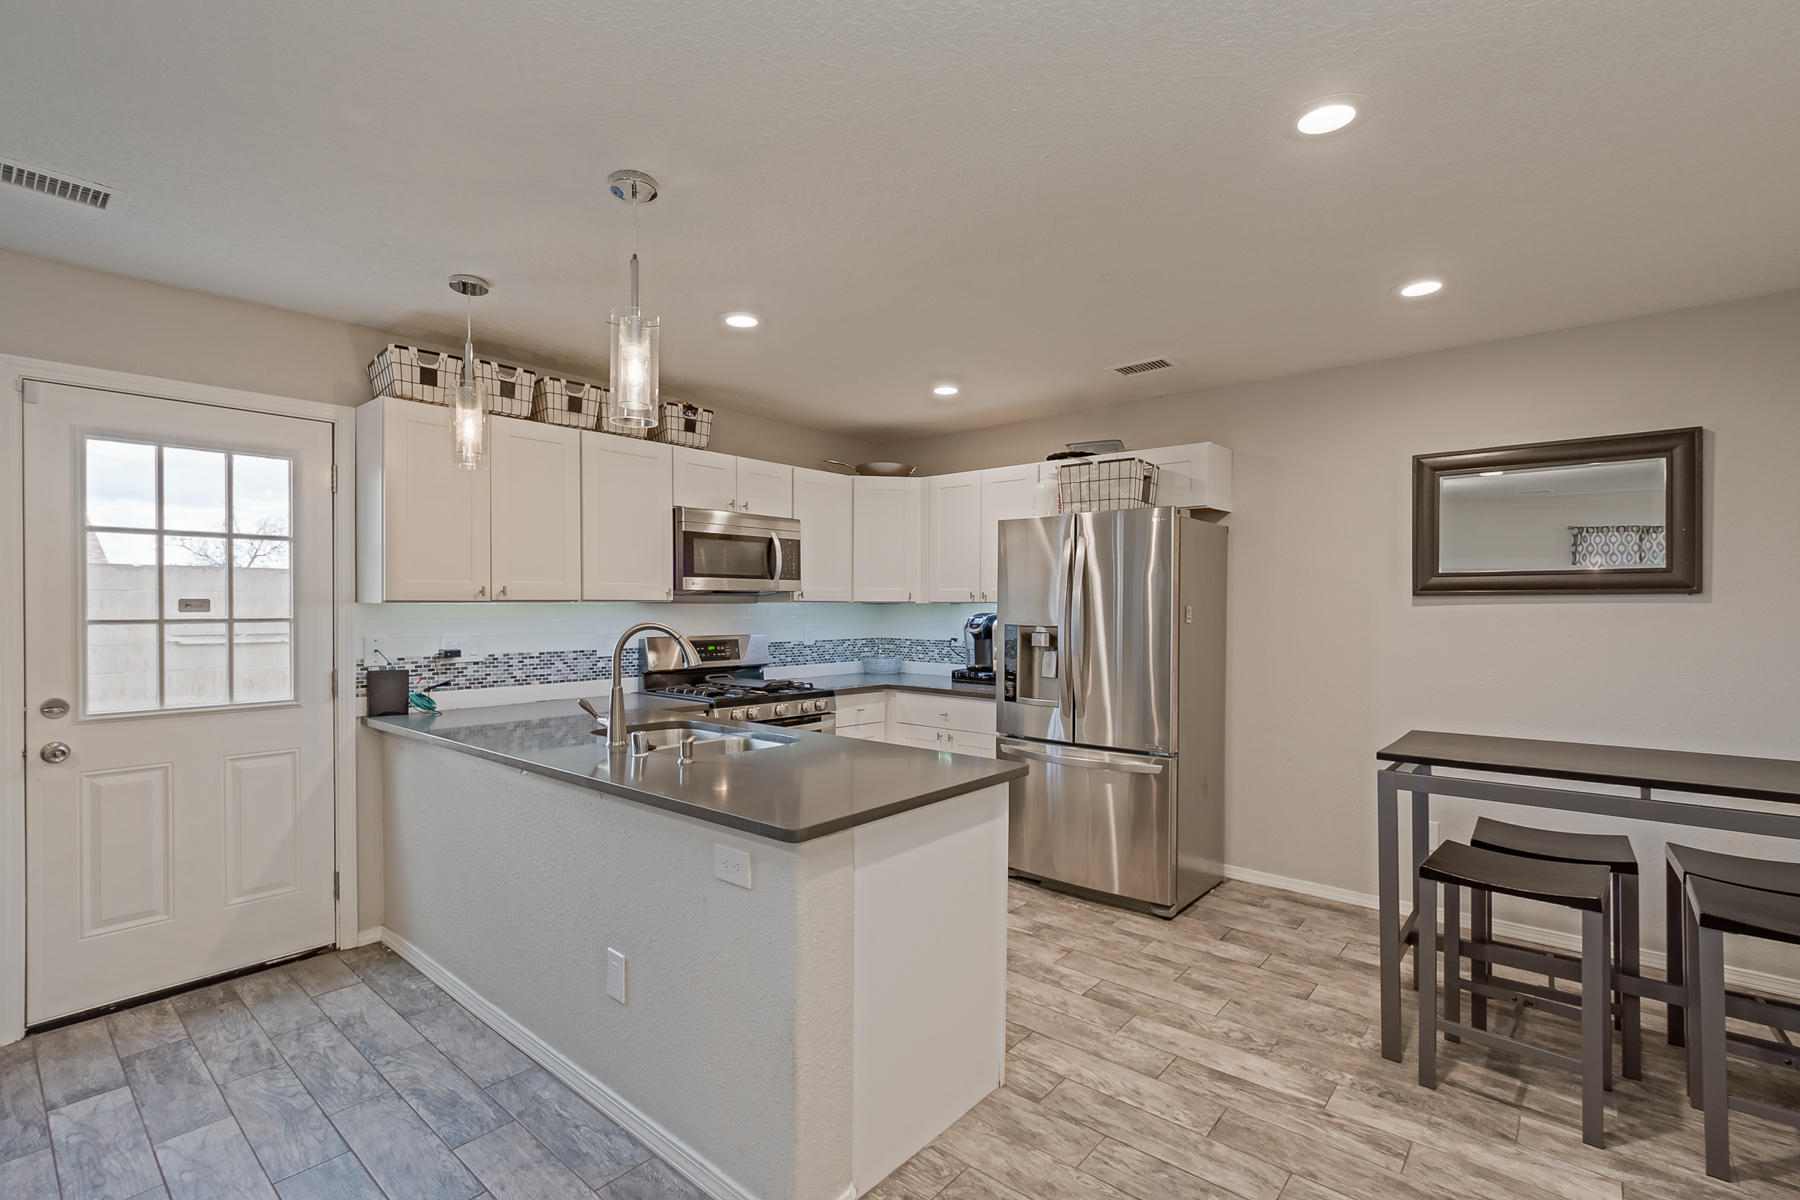 All appliances convey! Solar Panels convey!  Backyard out planters & fountain convey!  Newly installed closet shelving! BEAUTIFUL tile flooring!